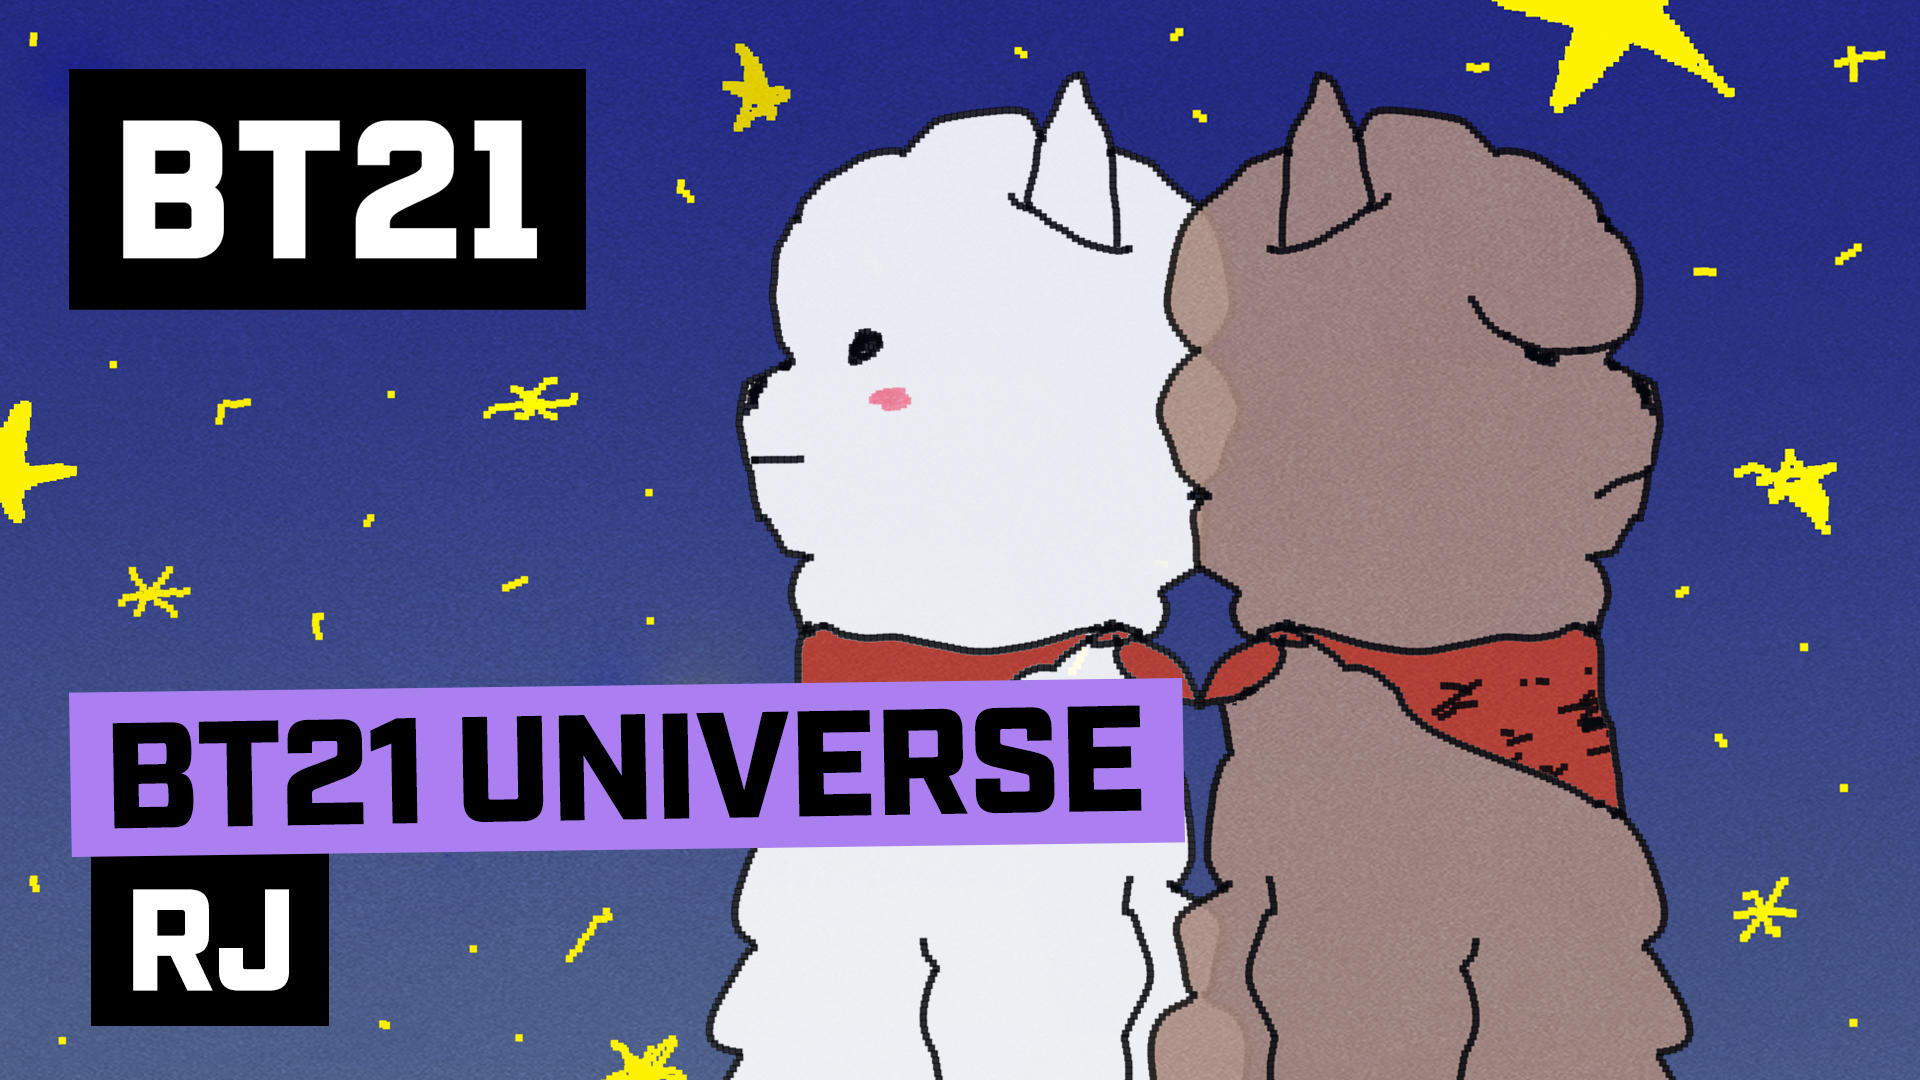 [BT21] BT21 UNIVERSE ANIMATION EP.03 - RJ